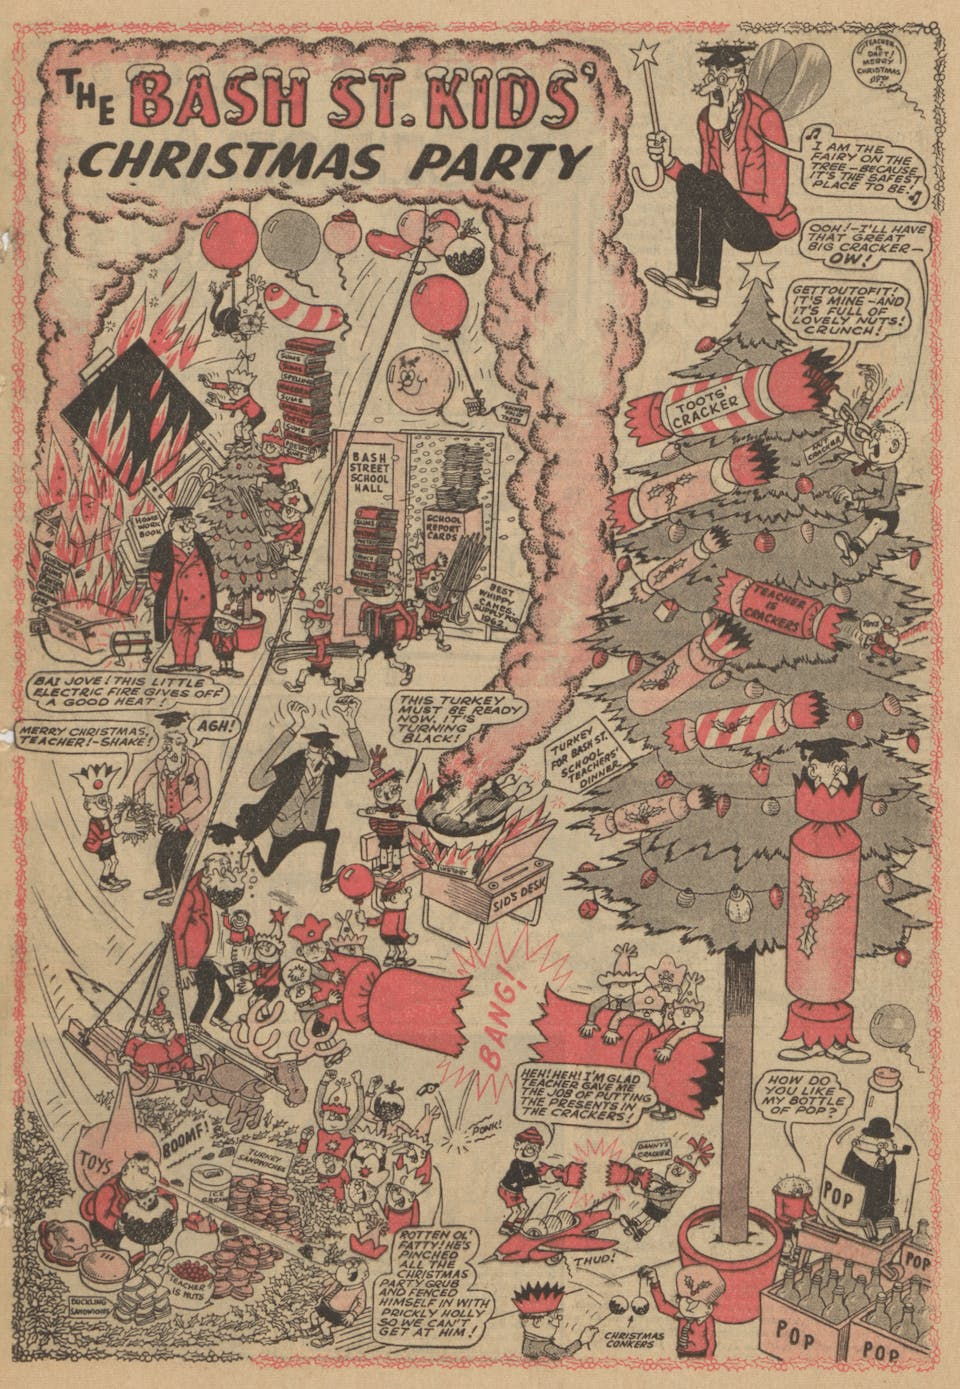 Bash Street Kids Christmas 1961